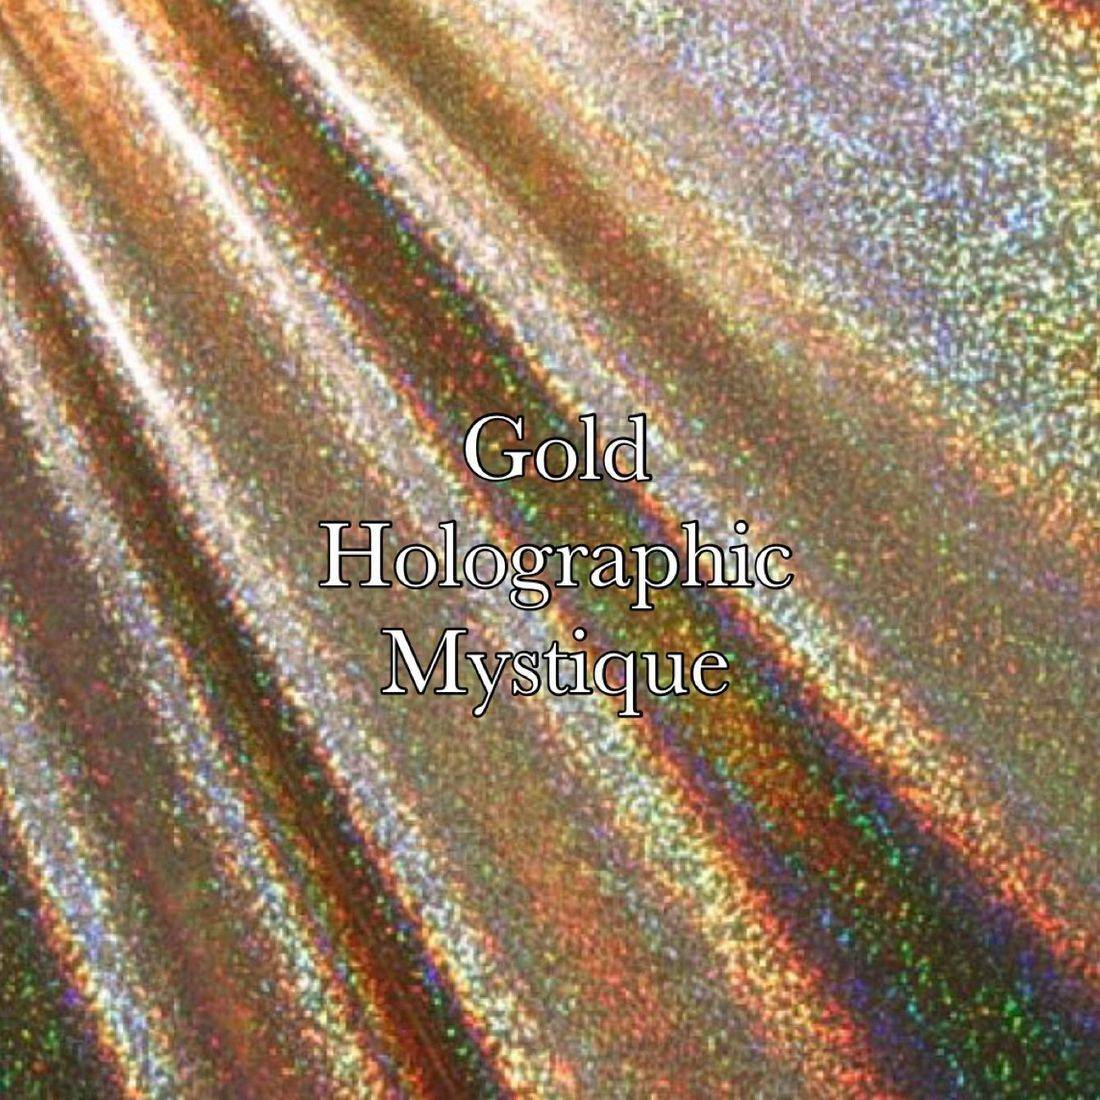 Gold holographic mist